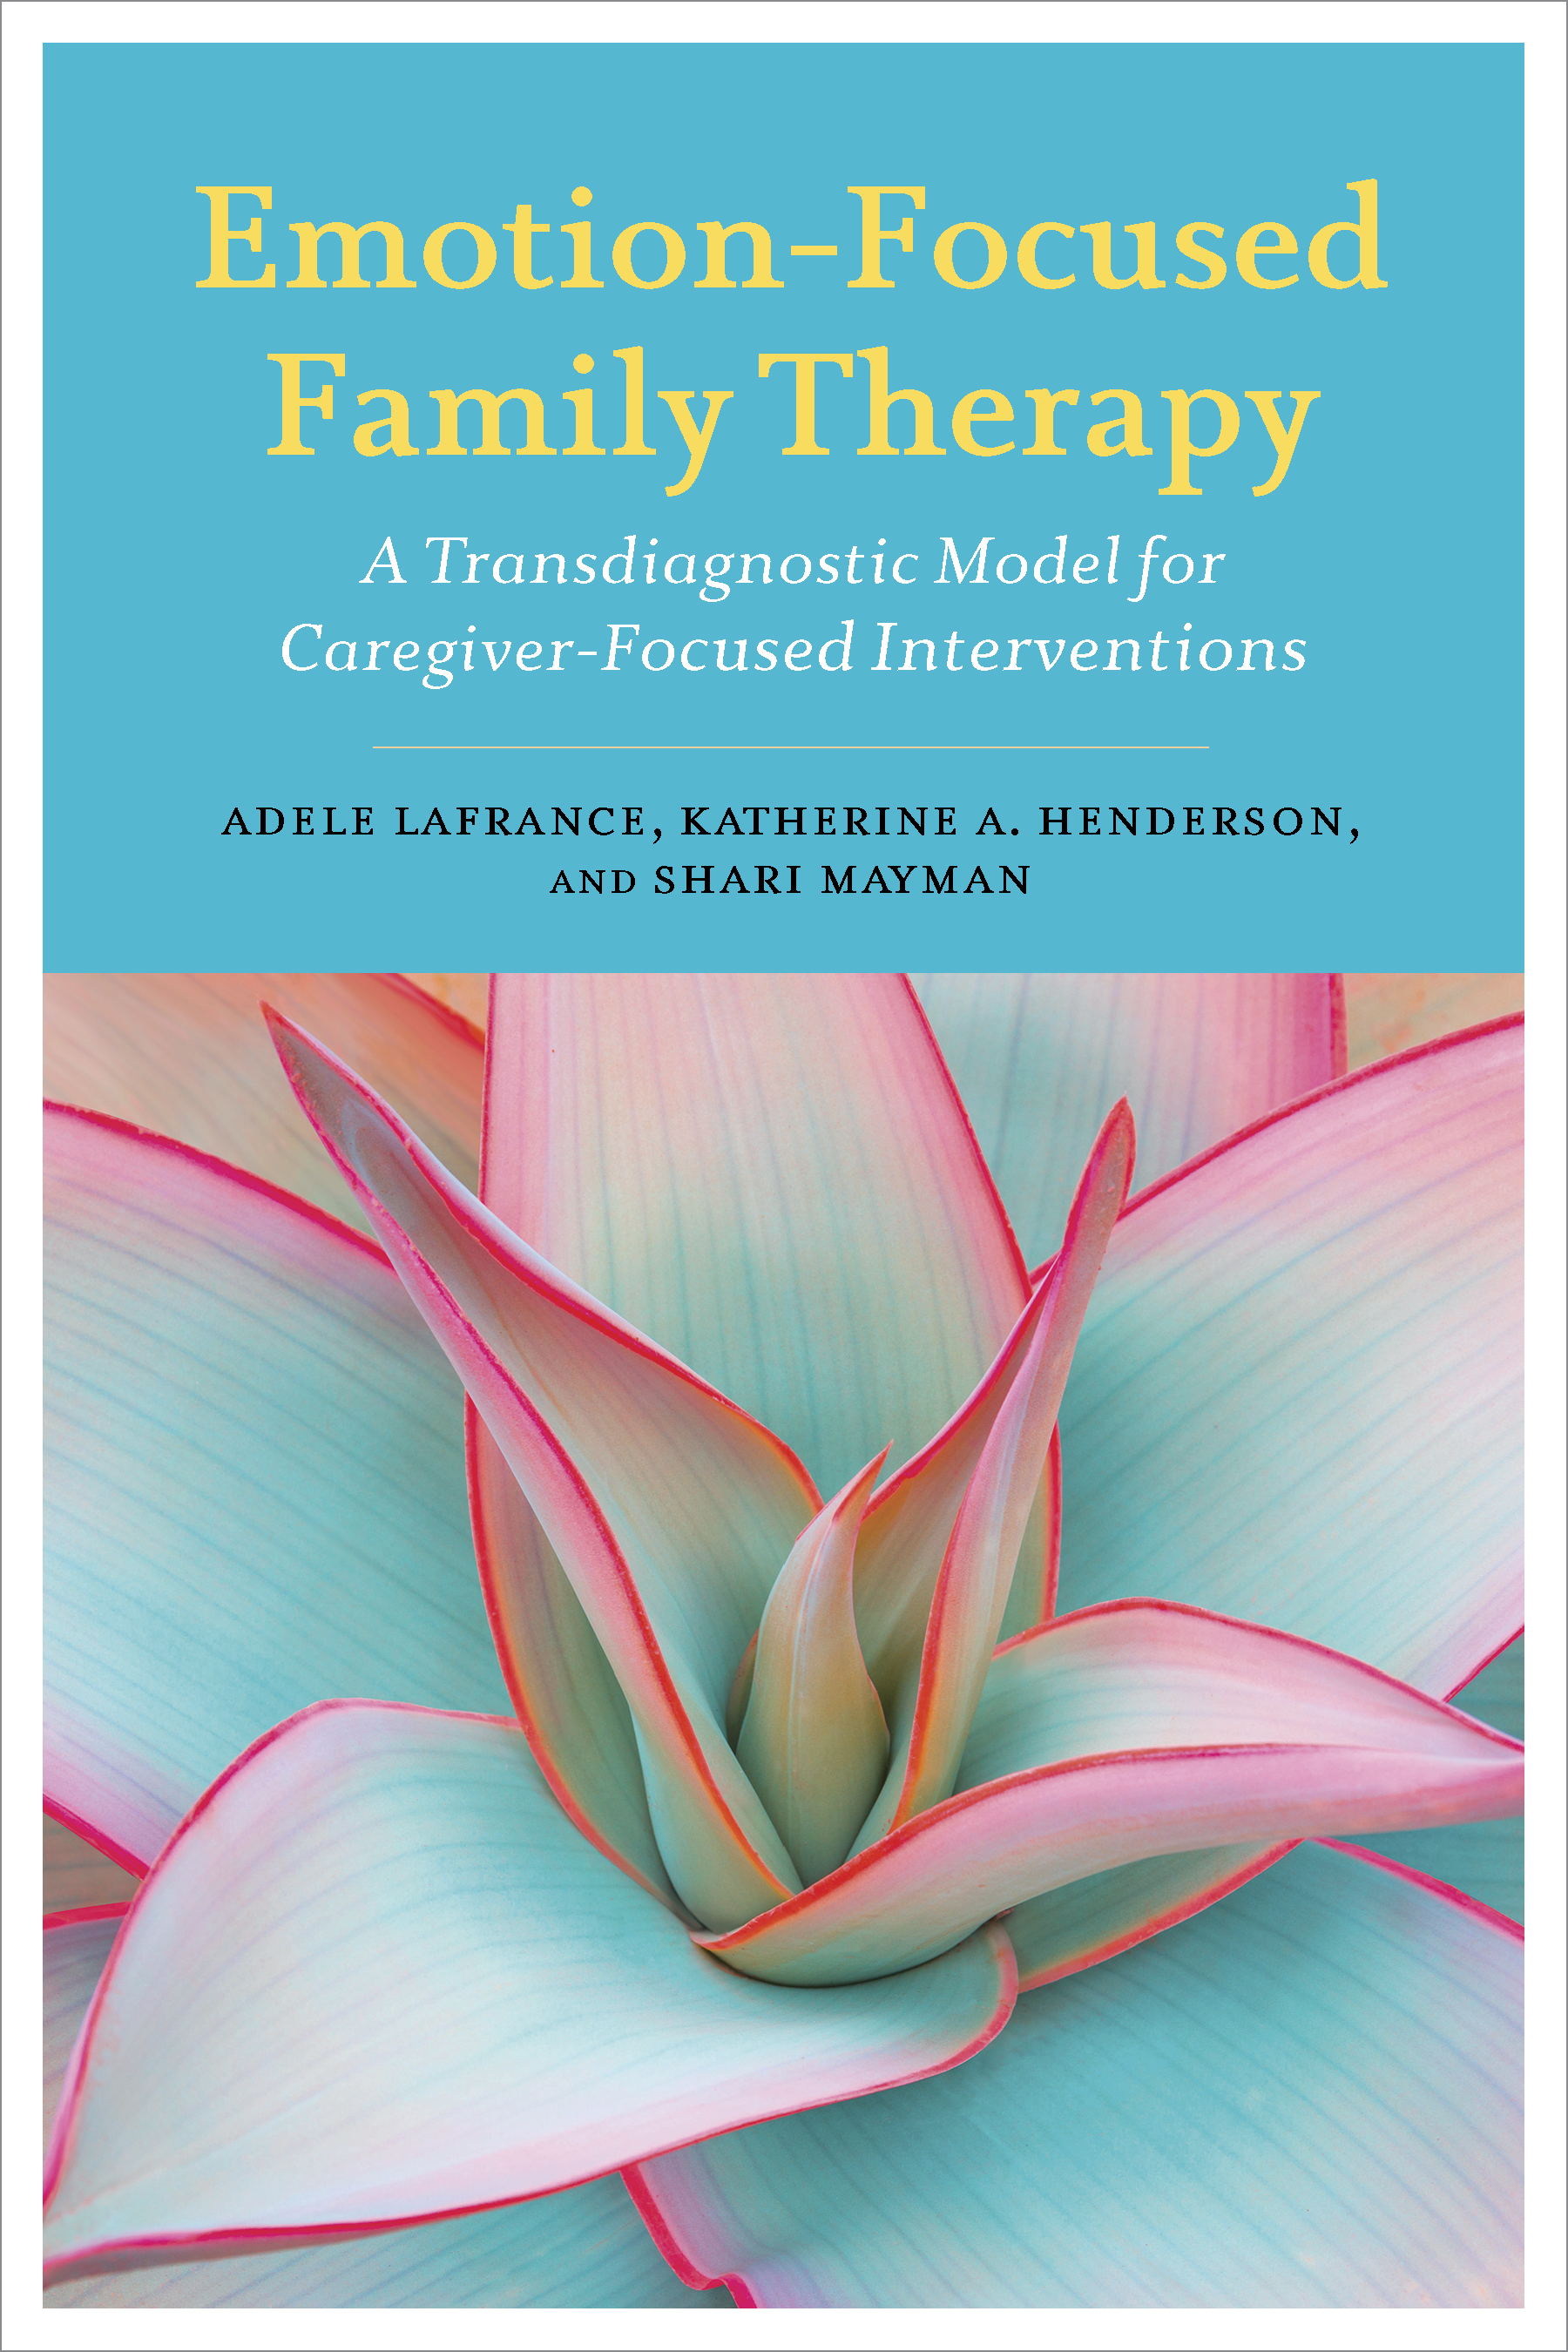 Emotion-Focused Family Therapy : A Transdiagnostic Model for Caregiver-Focused Interventions | Psychology & Self-Improvement